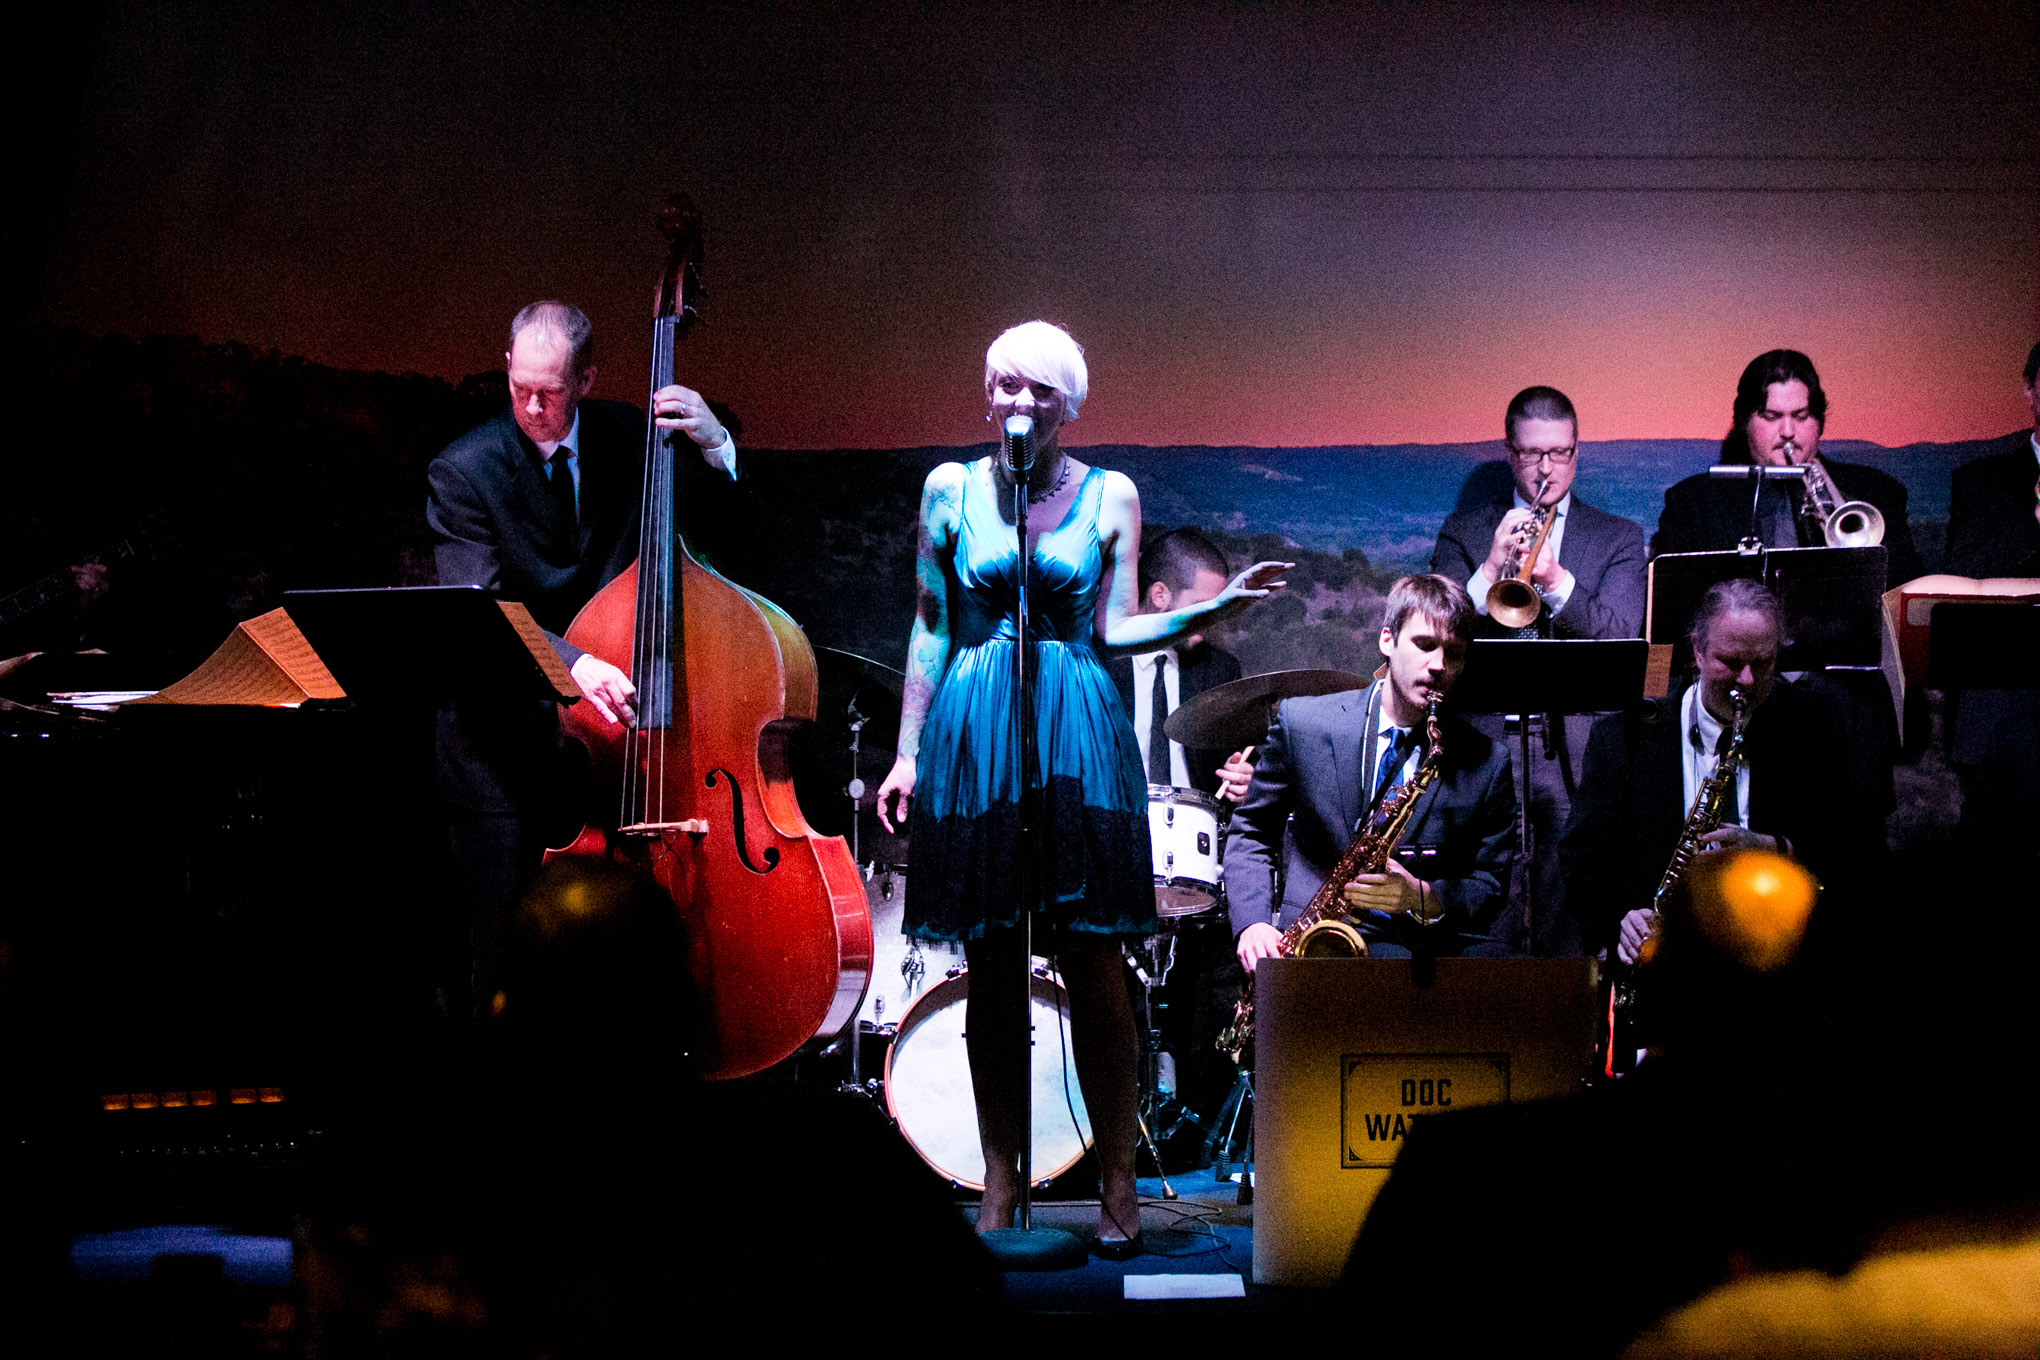 Doc Walkins band performs during the soft opening of Jazz, TX. Photo by Kathryn Boyd-Batstone.